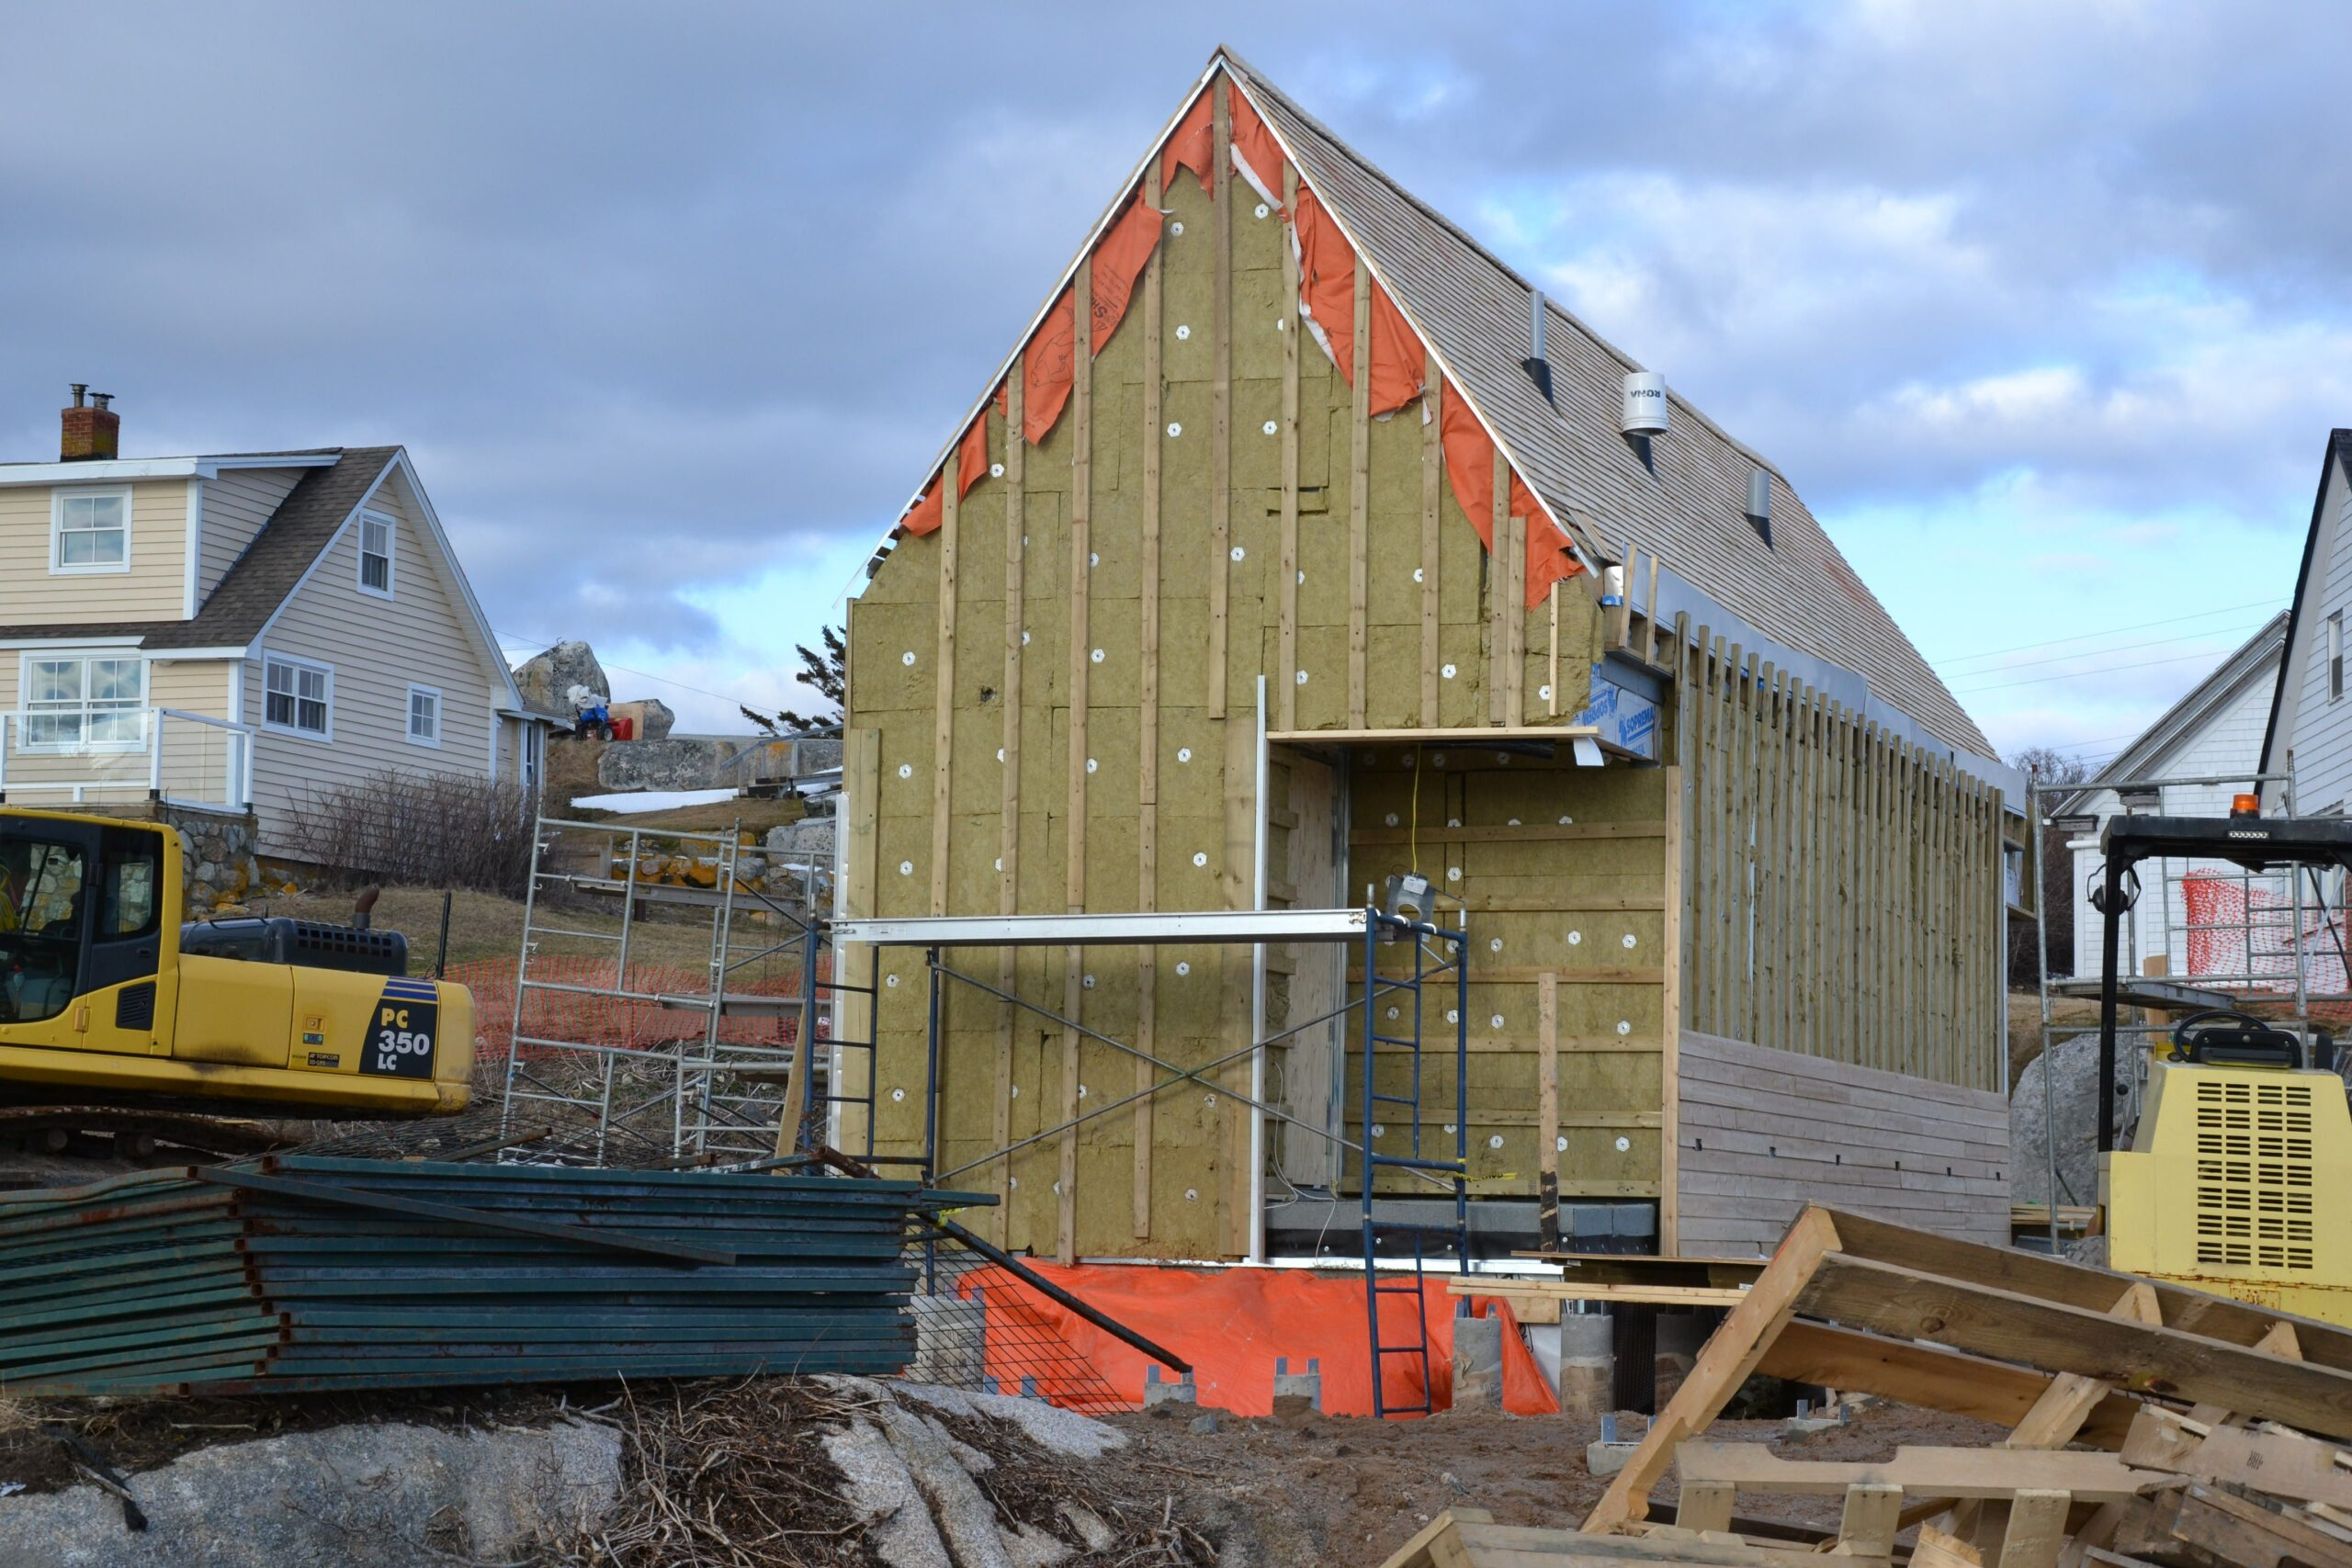 Wooden building with a sharply pitched roof under construction